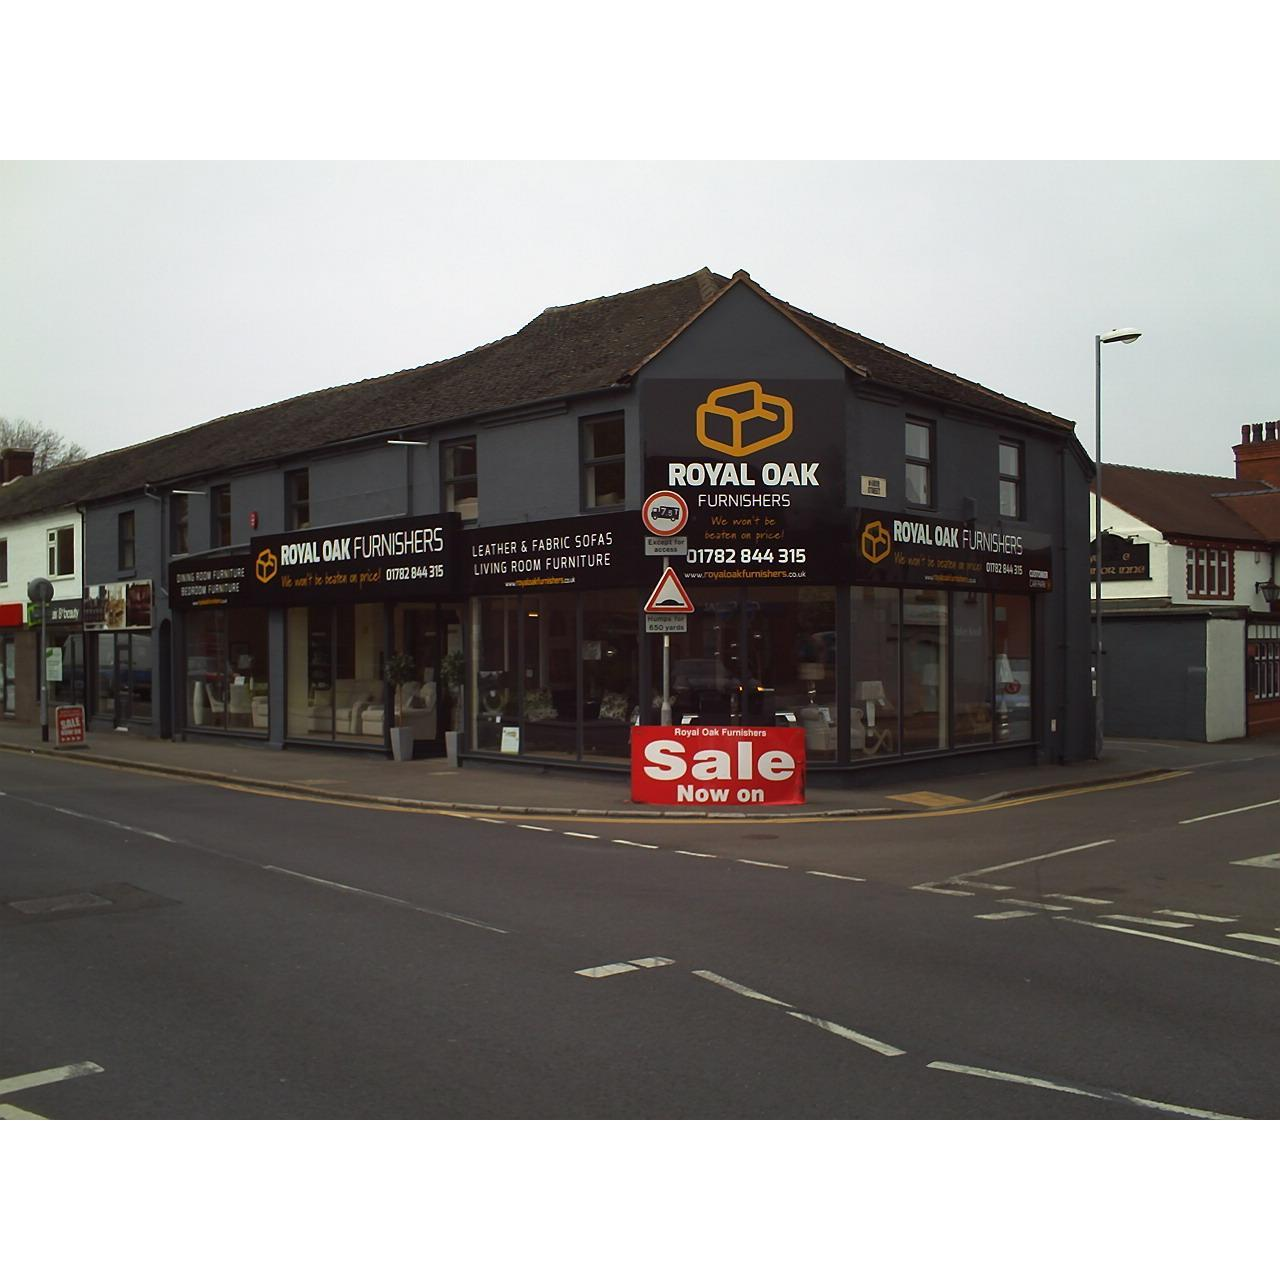 Royal Oak Furnishers Ltd Furniture For Home And Office In Stoke On Trent St4 2px